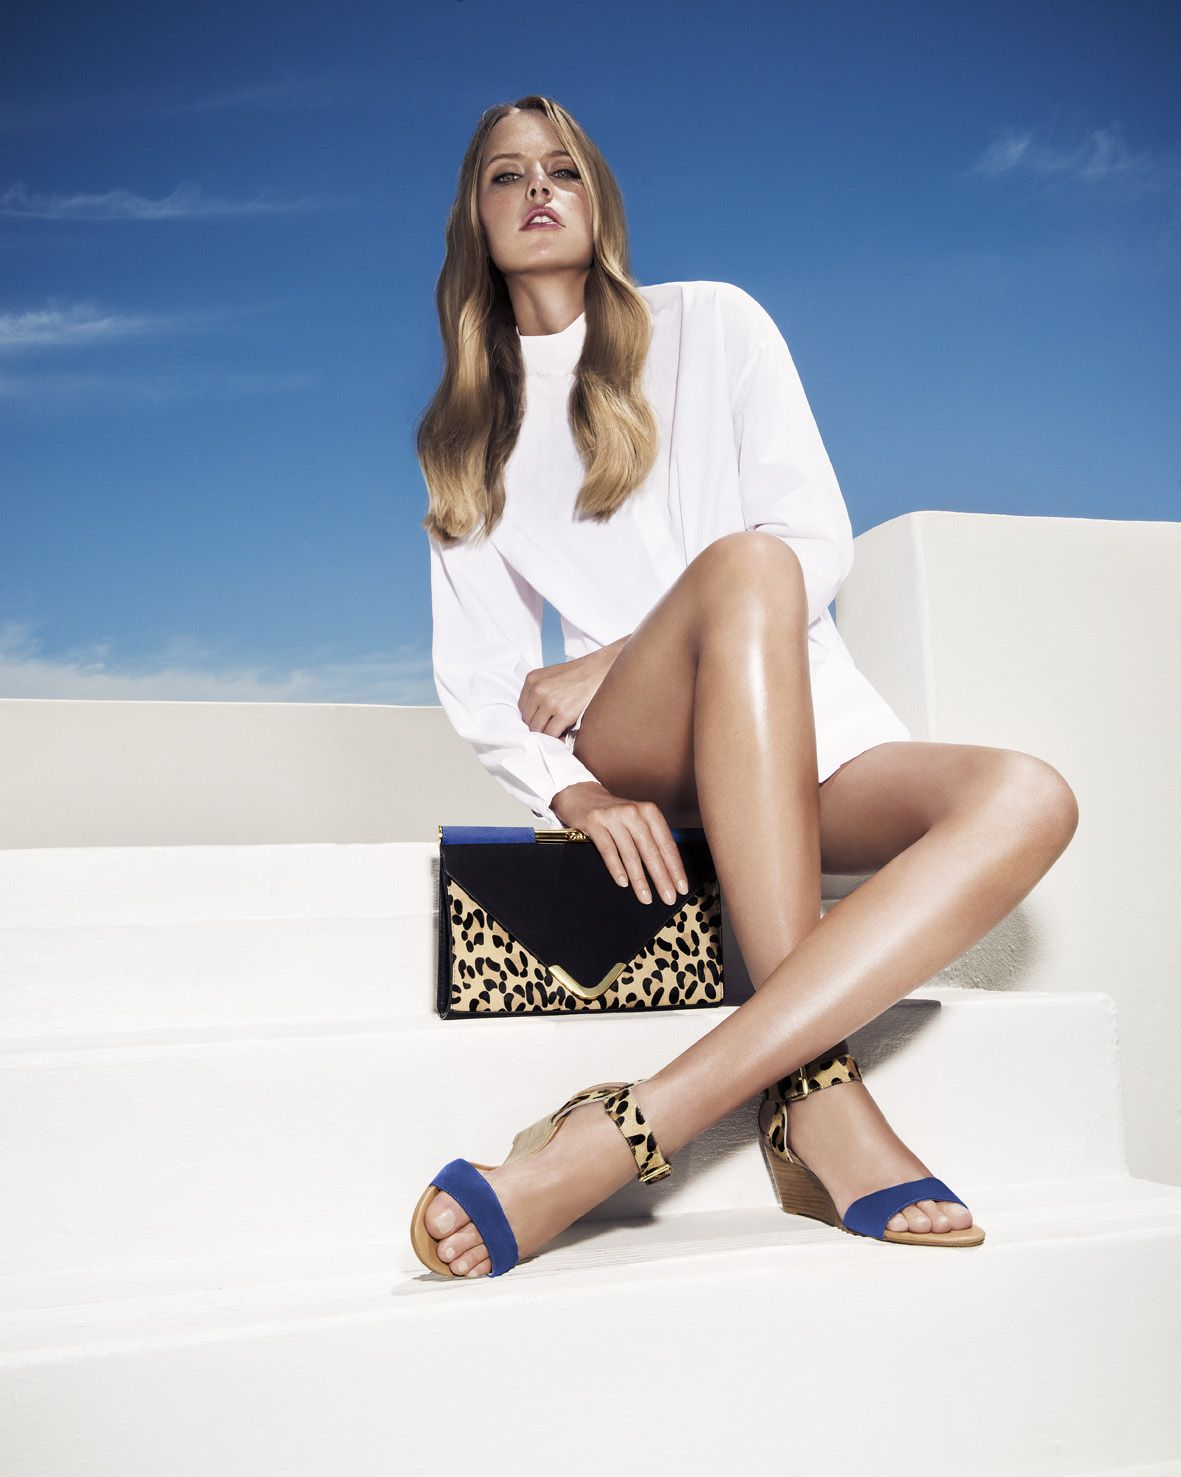 Dune London SS14 campaign, featuring Barrio clutch and leopard print  sandals Ginni #dunelondon #